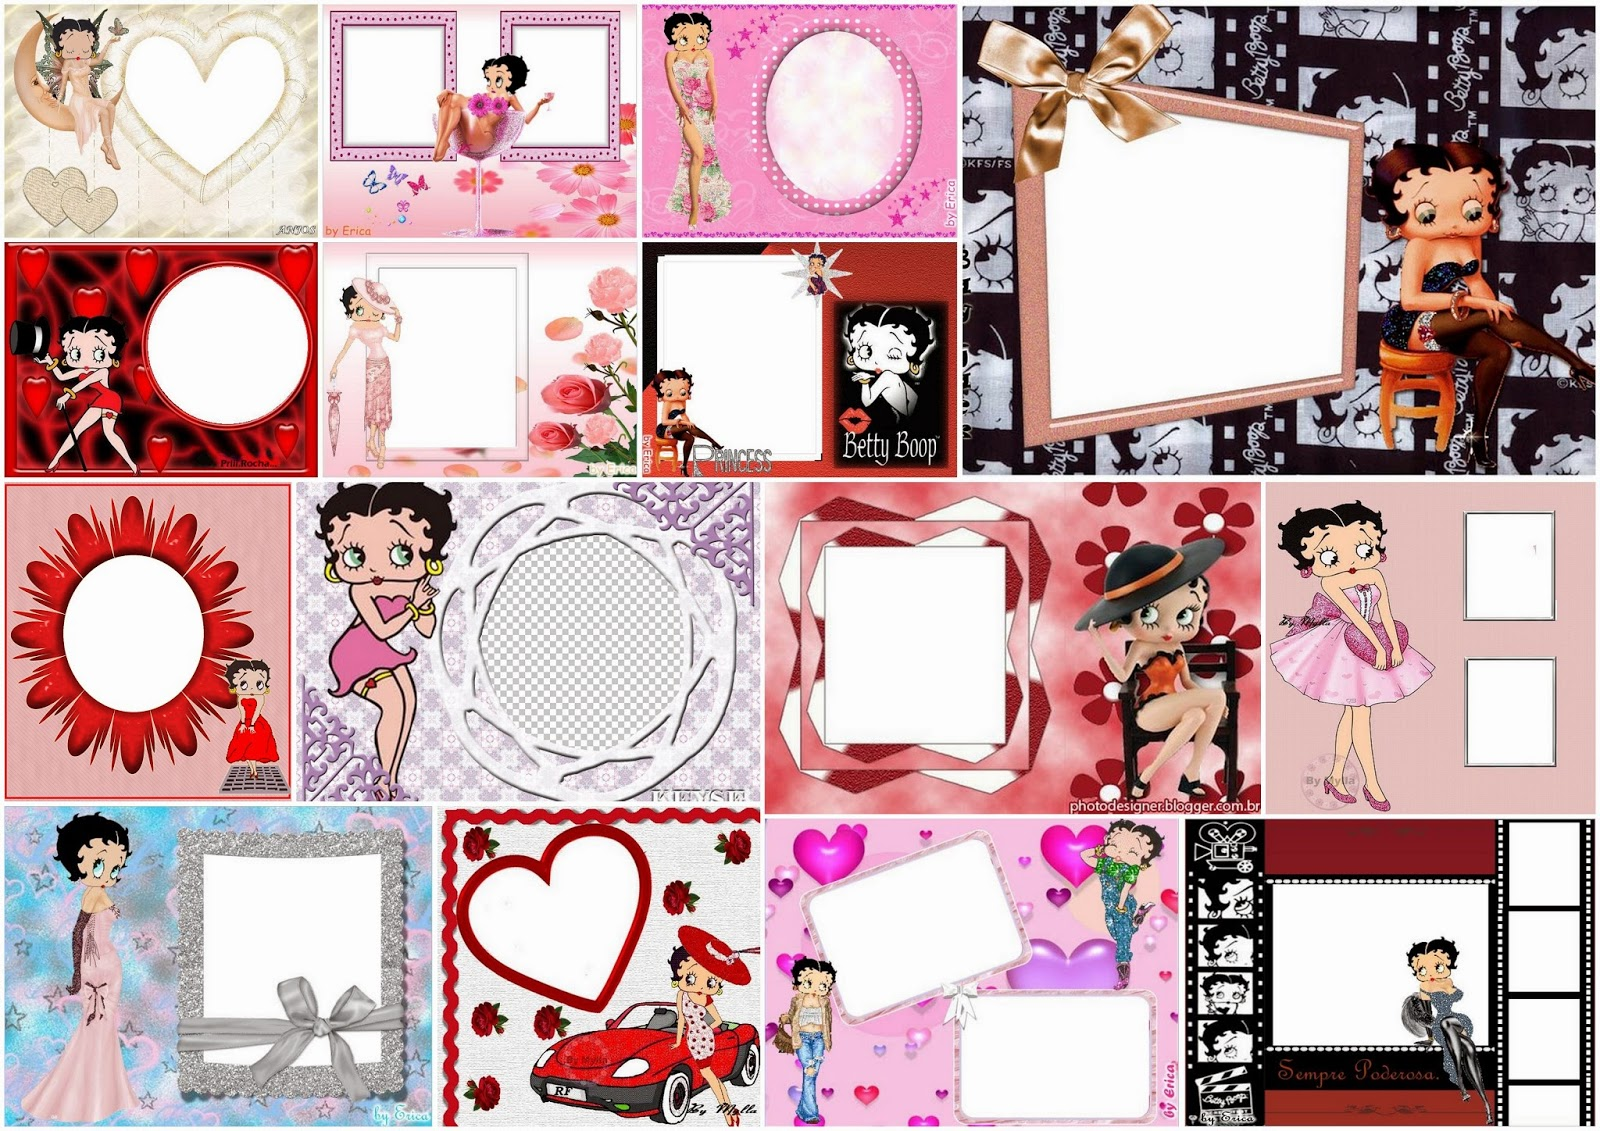 Betty Boop Photo Frames. | Oh My Fiesta For Ladies!